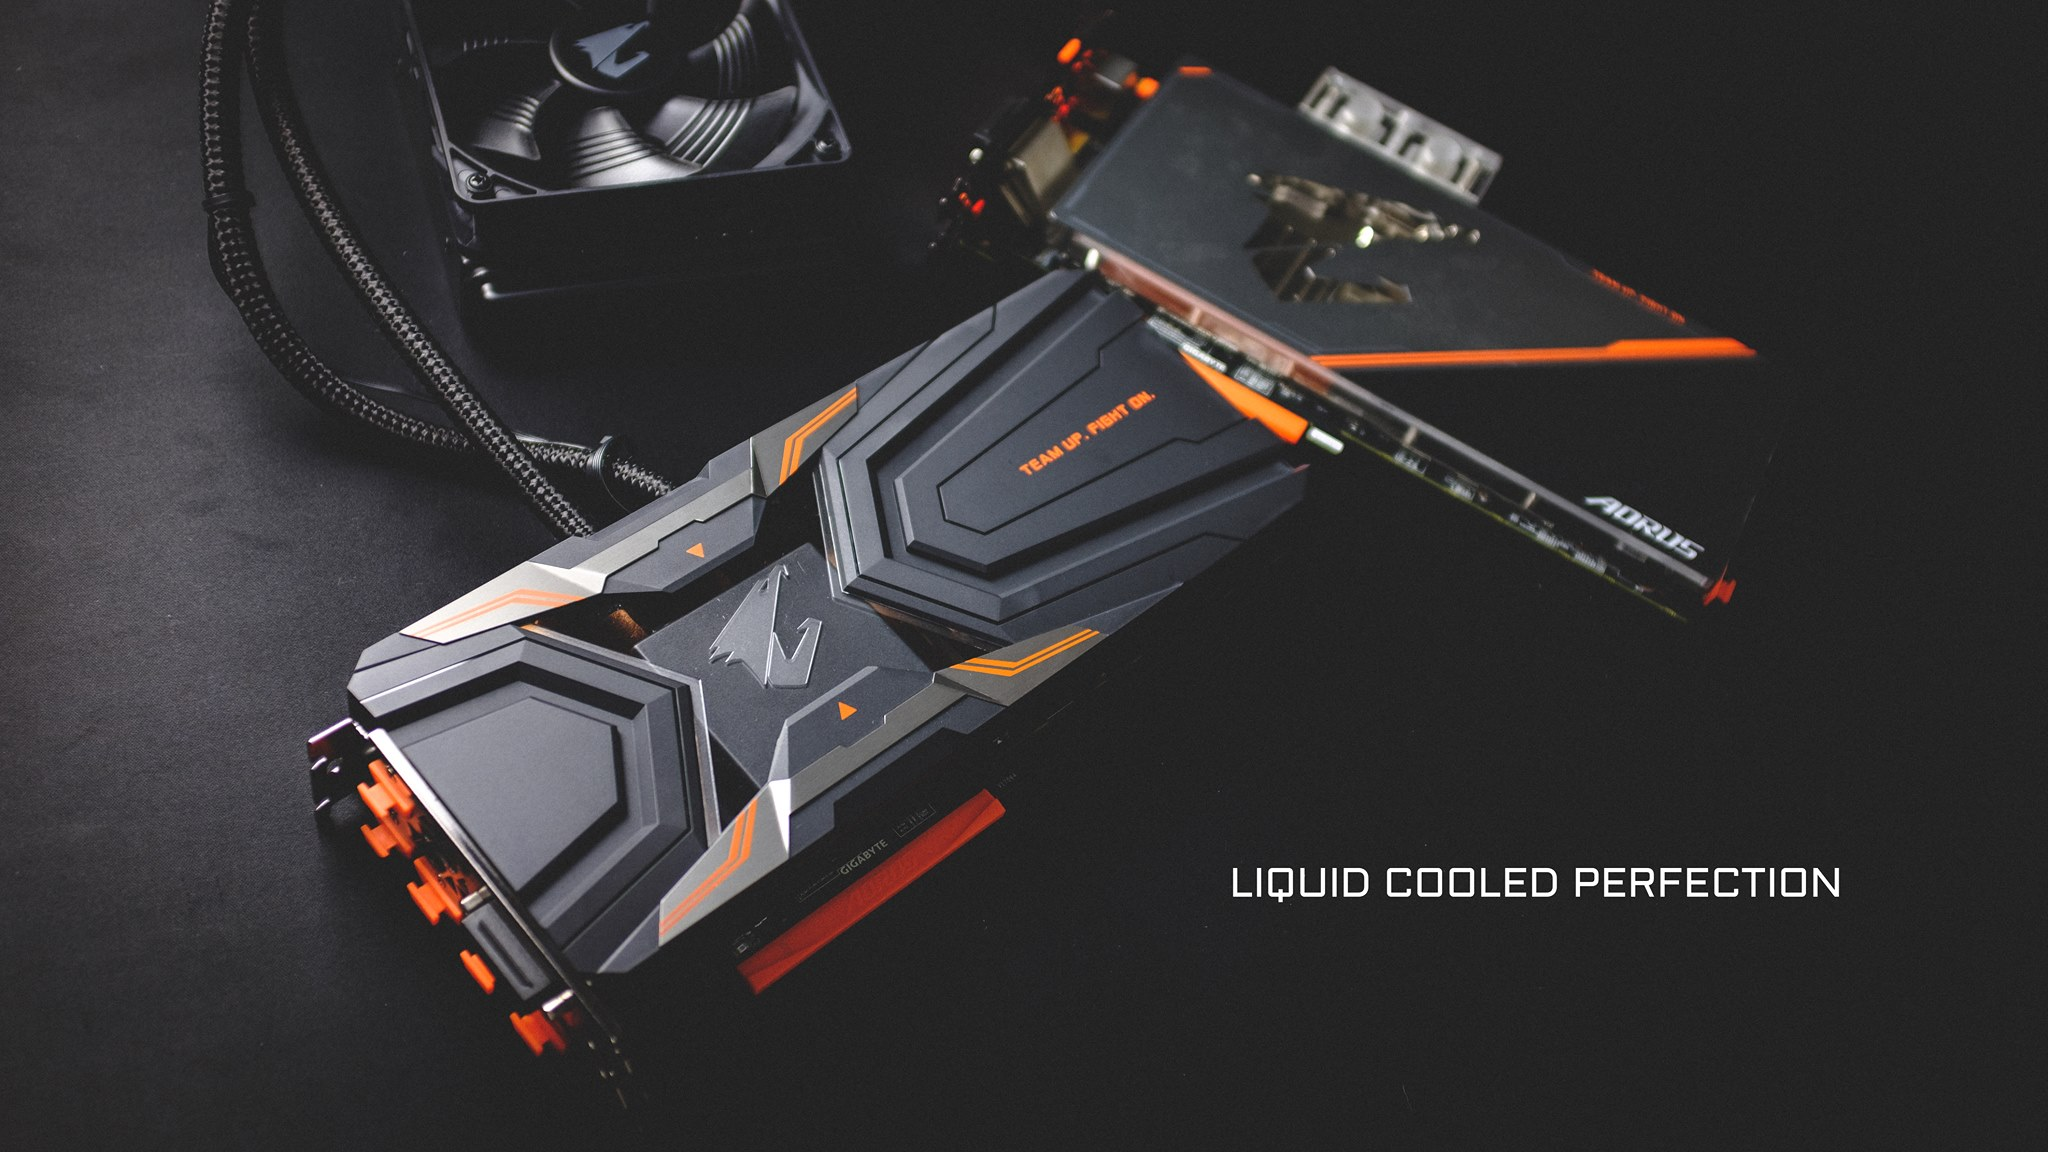 Rog Wallpaper Full Hd Two Liquid Cooled Aorus Geforce 174 Gtx 1080 Ti Graphics